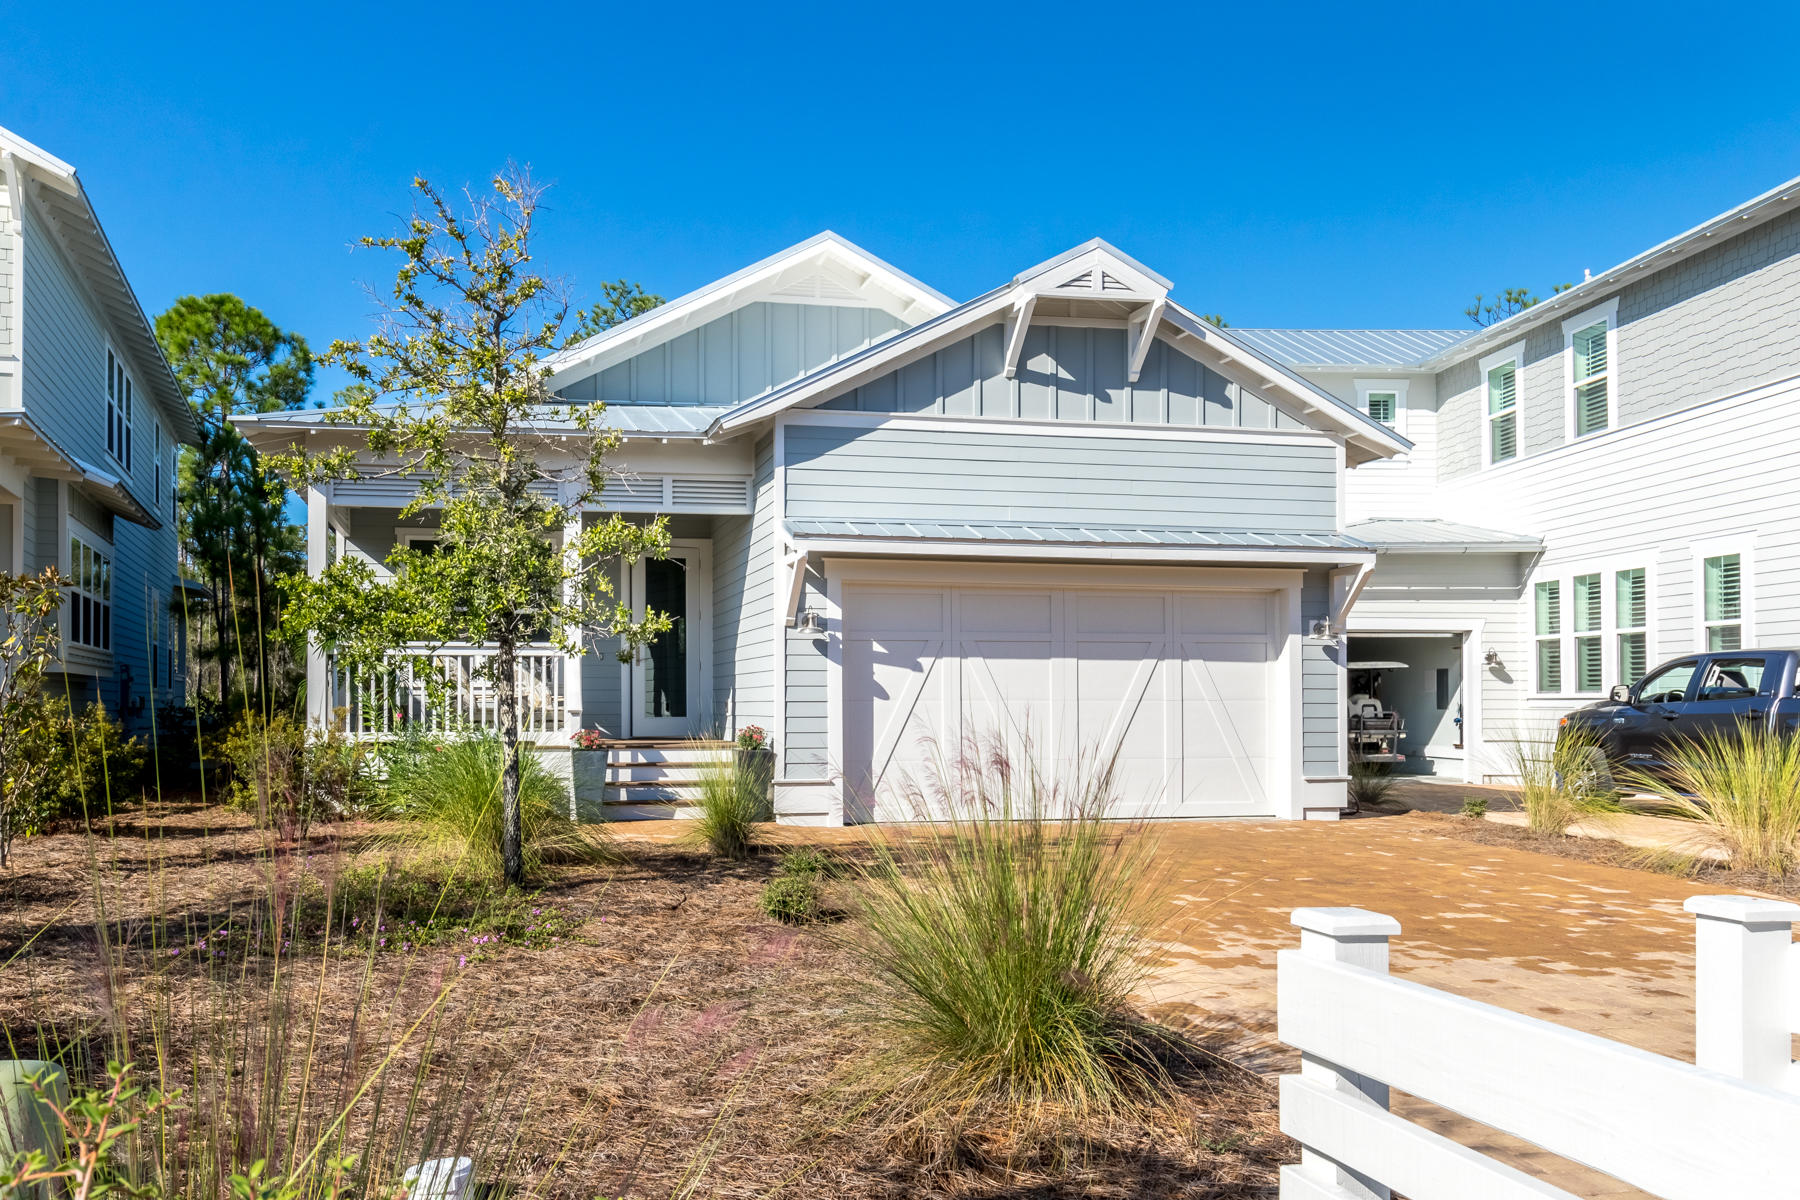 This rare SINGLE STORY cottage offers 3 spacious bedrooms, 2 CAR GARAGE, open concept living and top